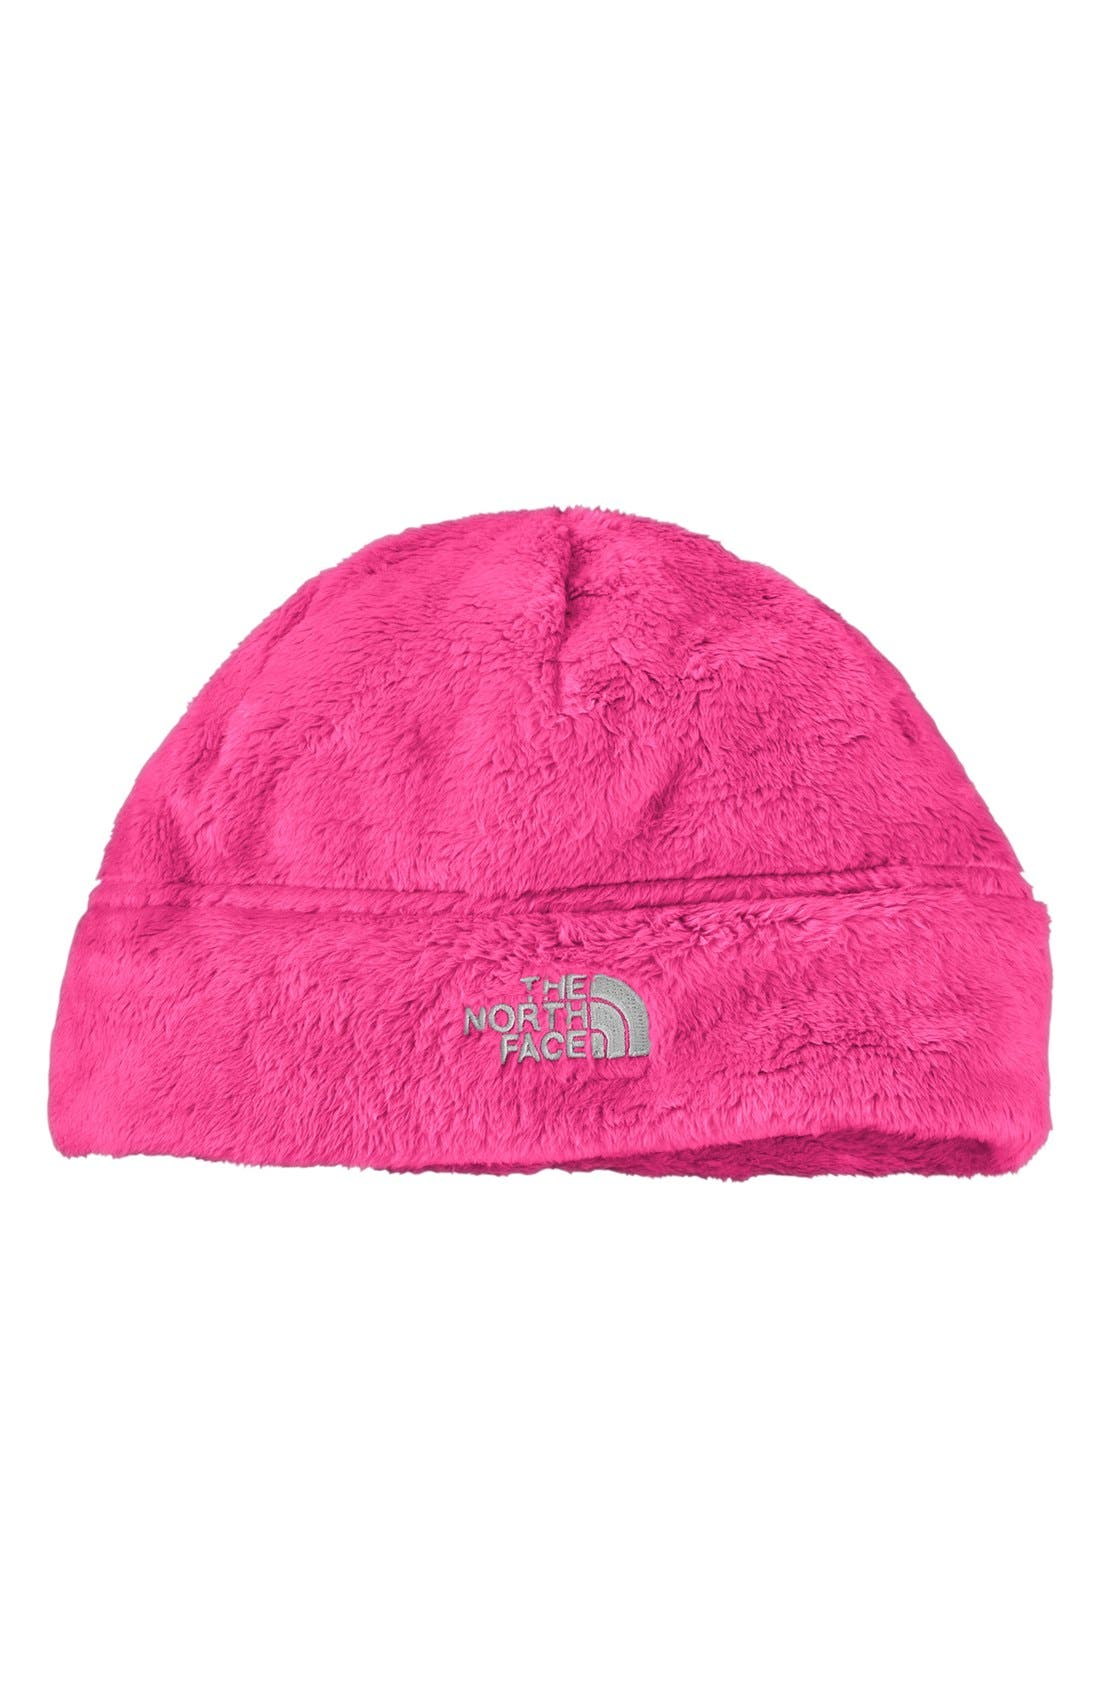 Main Image - The North Face 'Denali' Beanie (Girls)